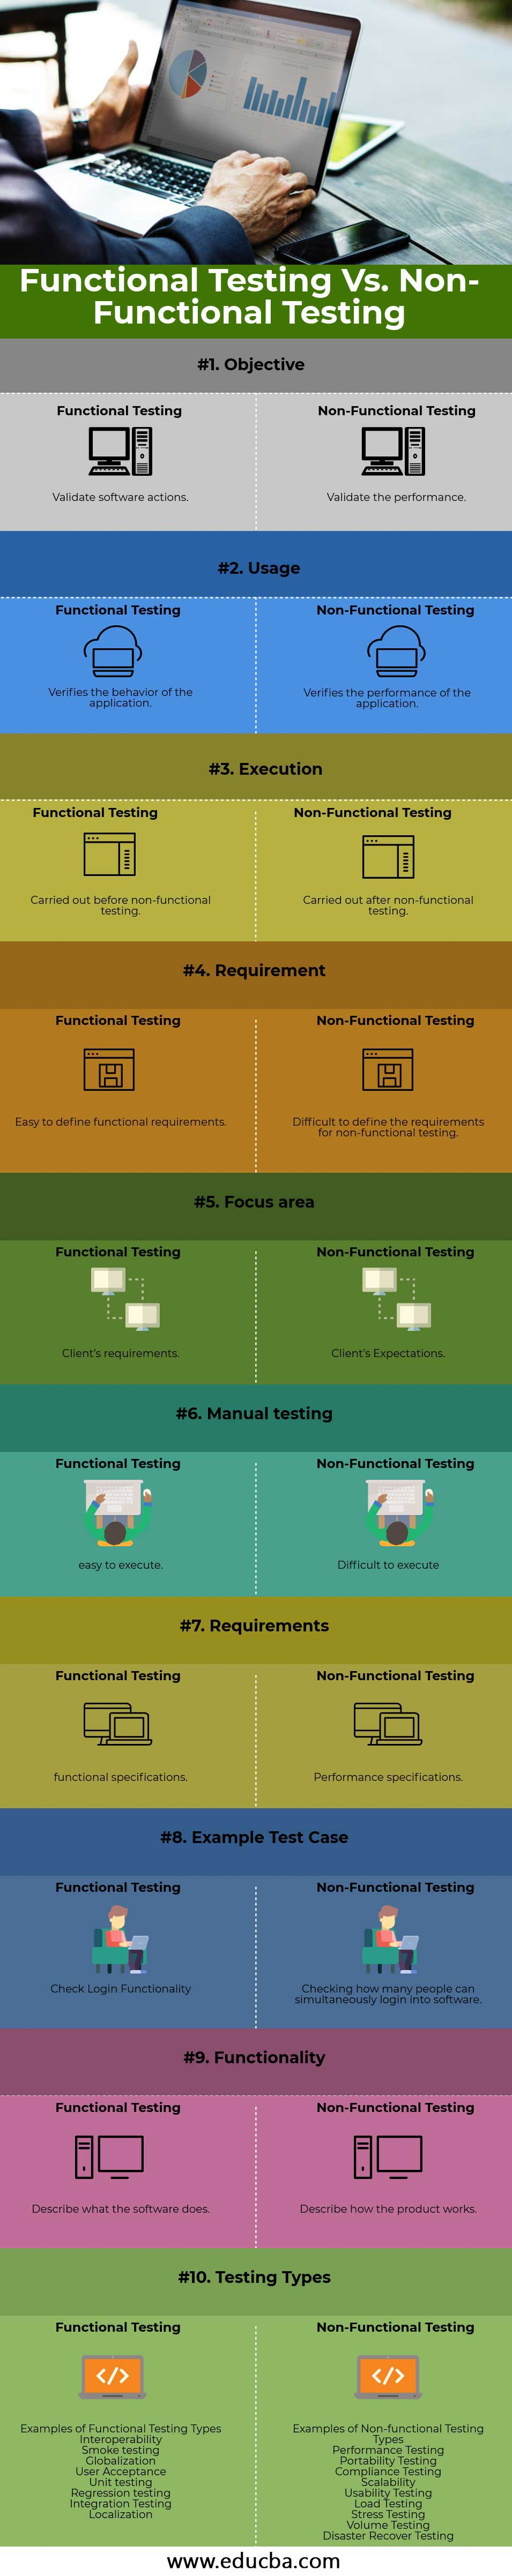 Functional-Testing-vs-Non-Functional-Testing-info